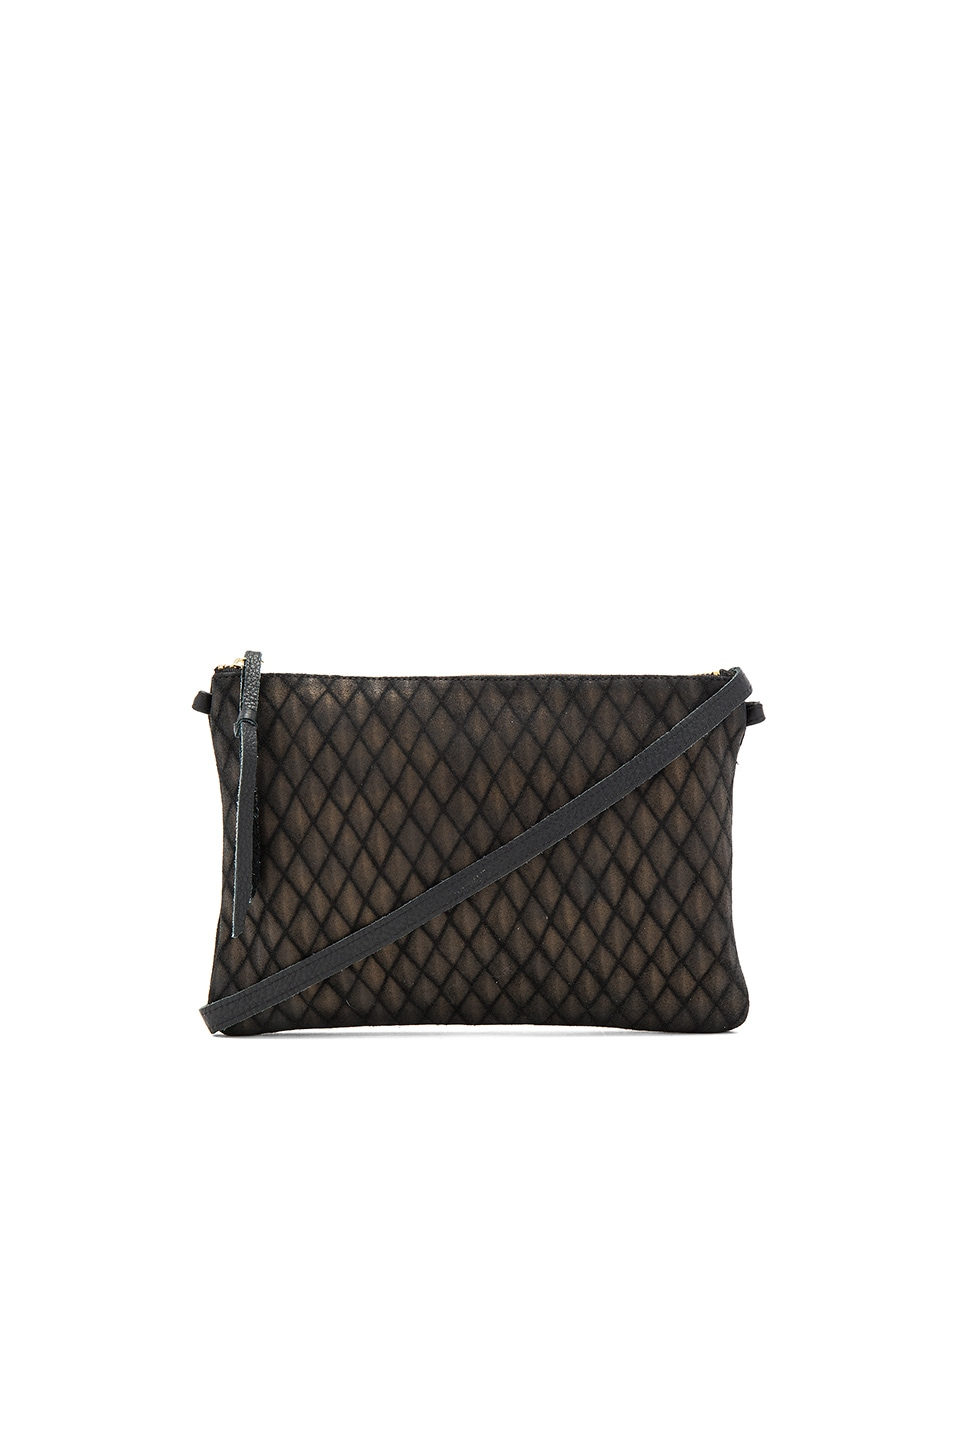 Oliveve Queenie Crossbody Bag in Diamond